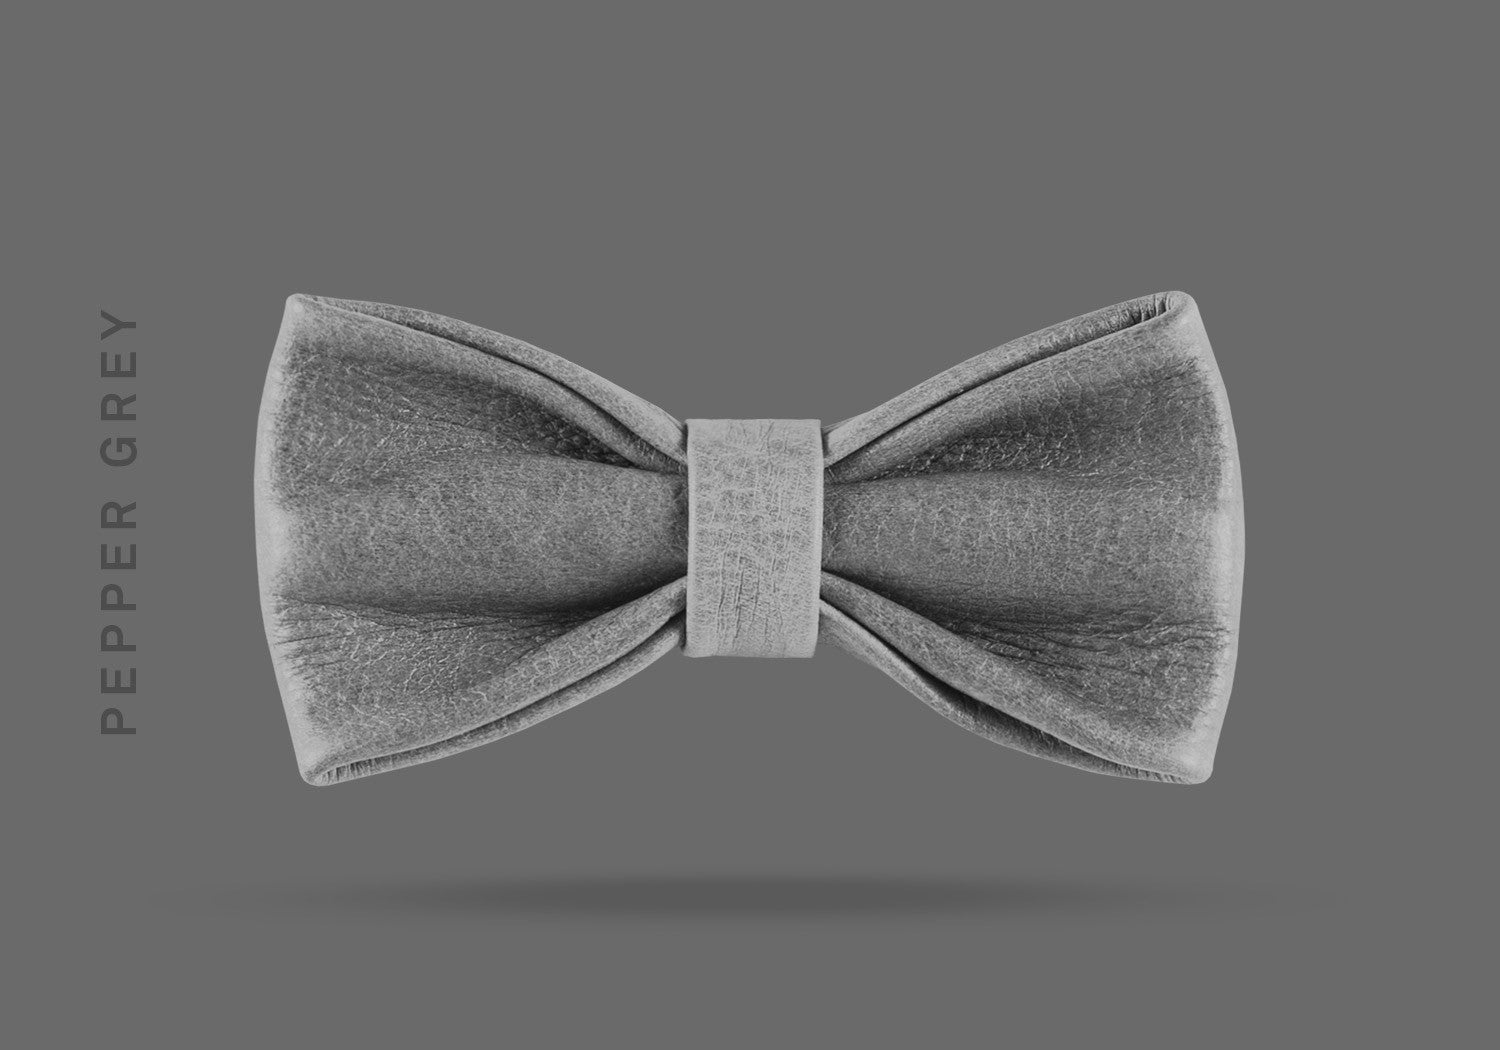 This pepper grey WEEF handmade leather bow is a great present or gift idea for dapper and stylish gentlemen for fathers day, valentines day or Christmas.